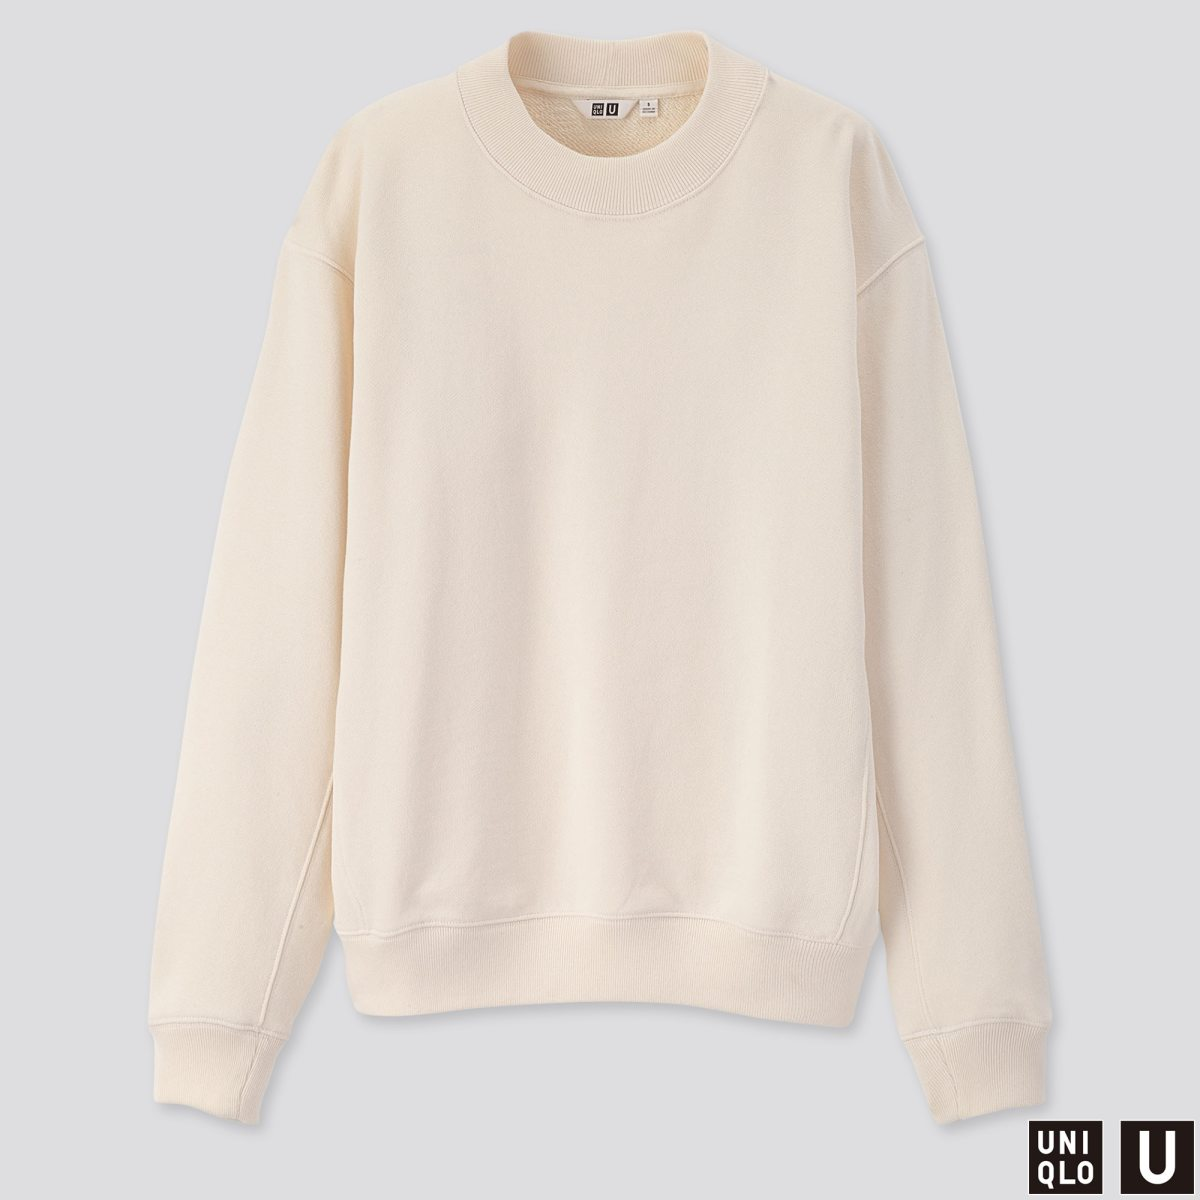 Uniqlo U Long-Sleeve Sweat Pullover, $29.90, available here.